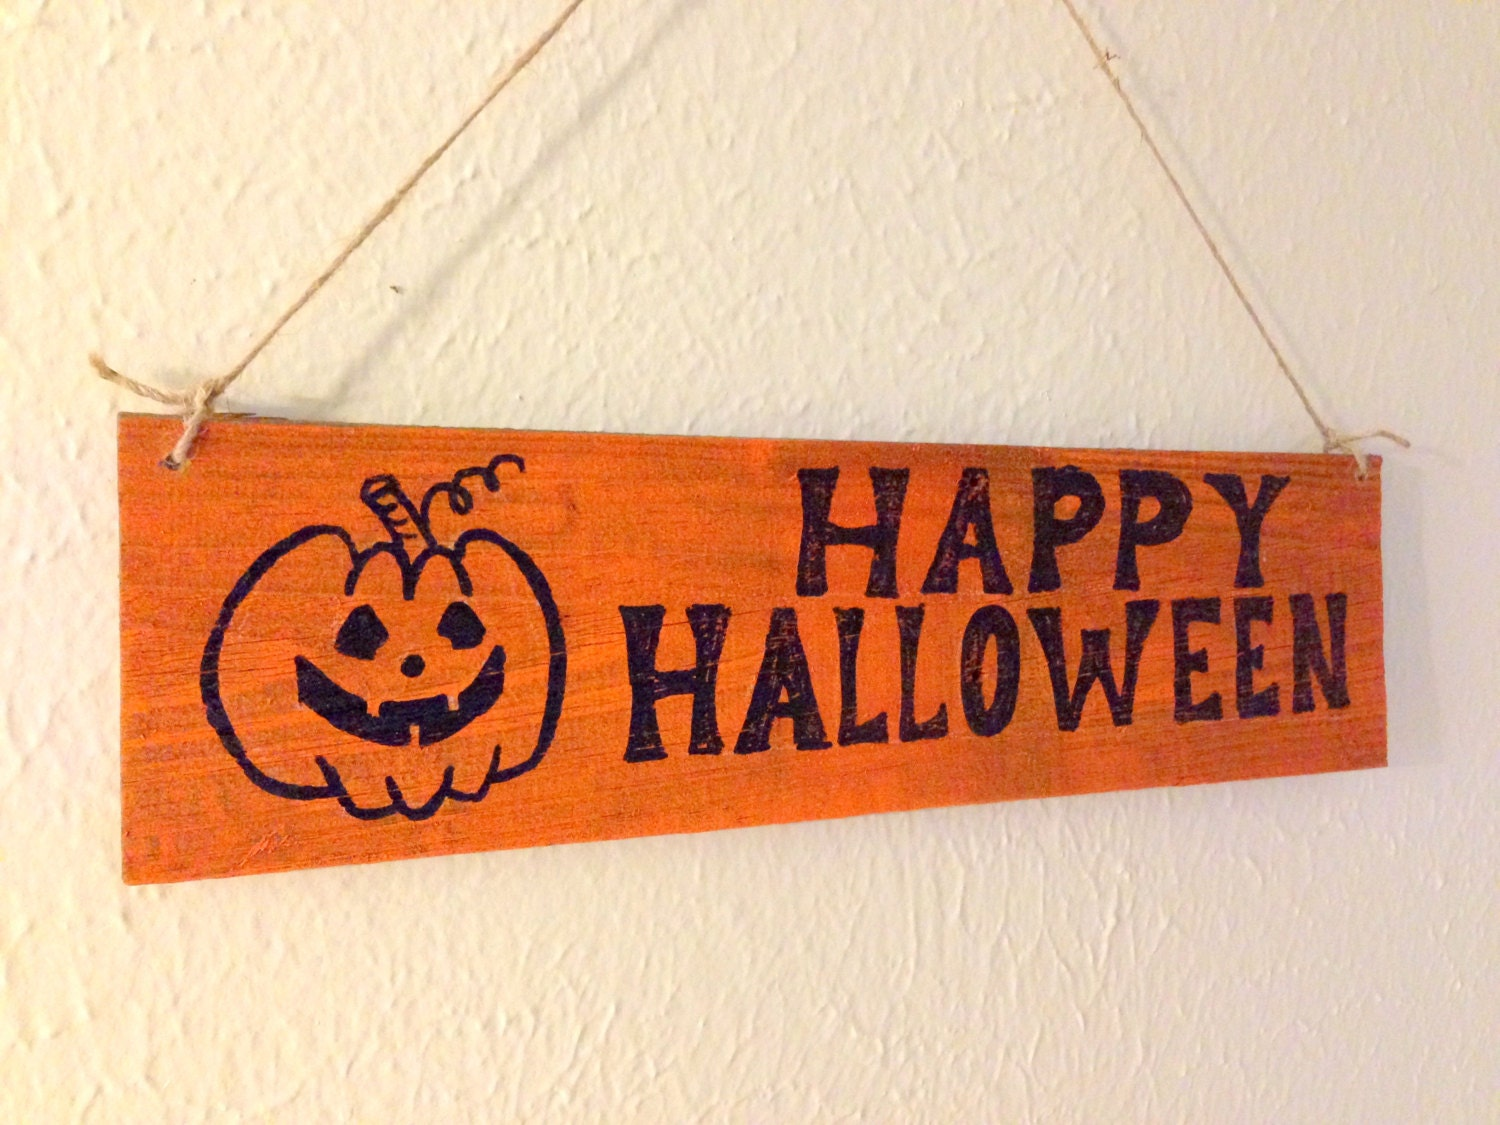 Happy Halloween wsign, Pampkin sign, Witches Welcome, Broom ...